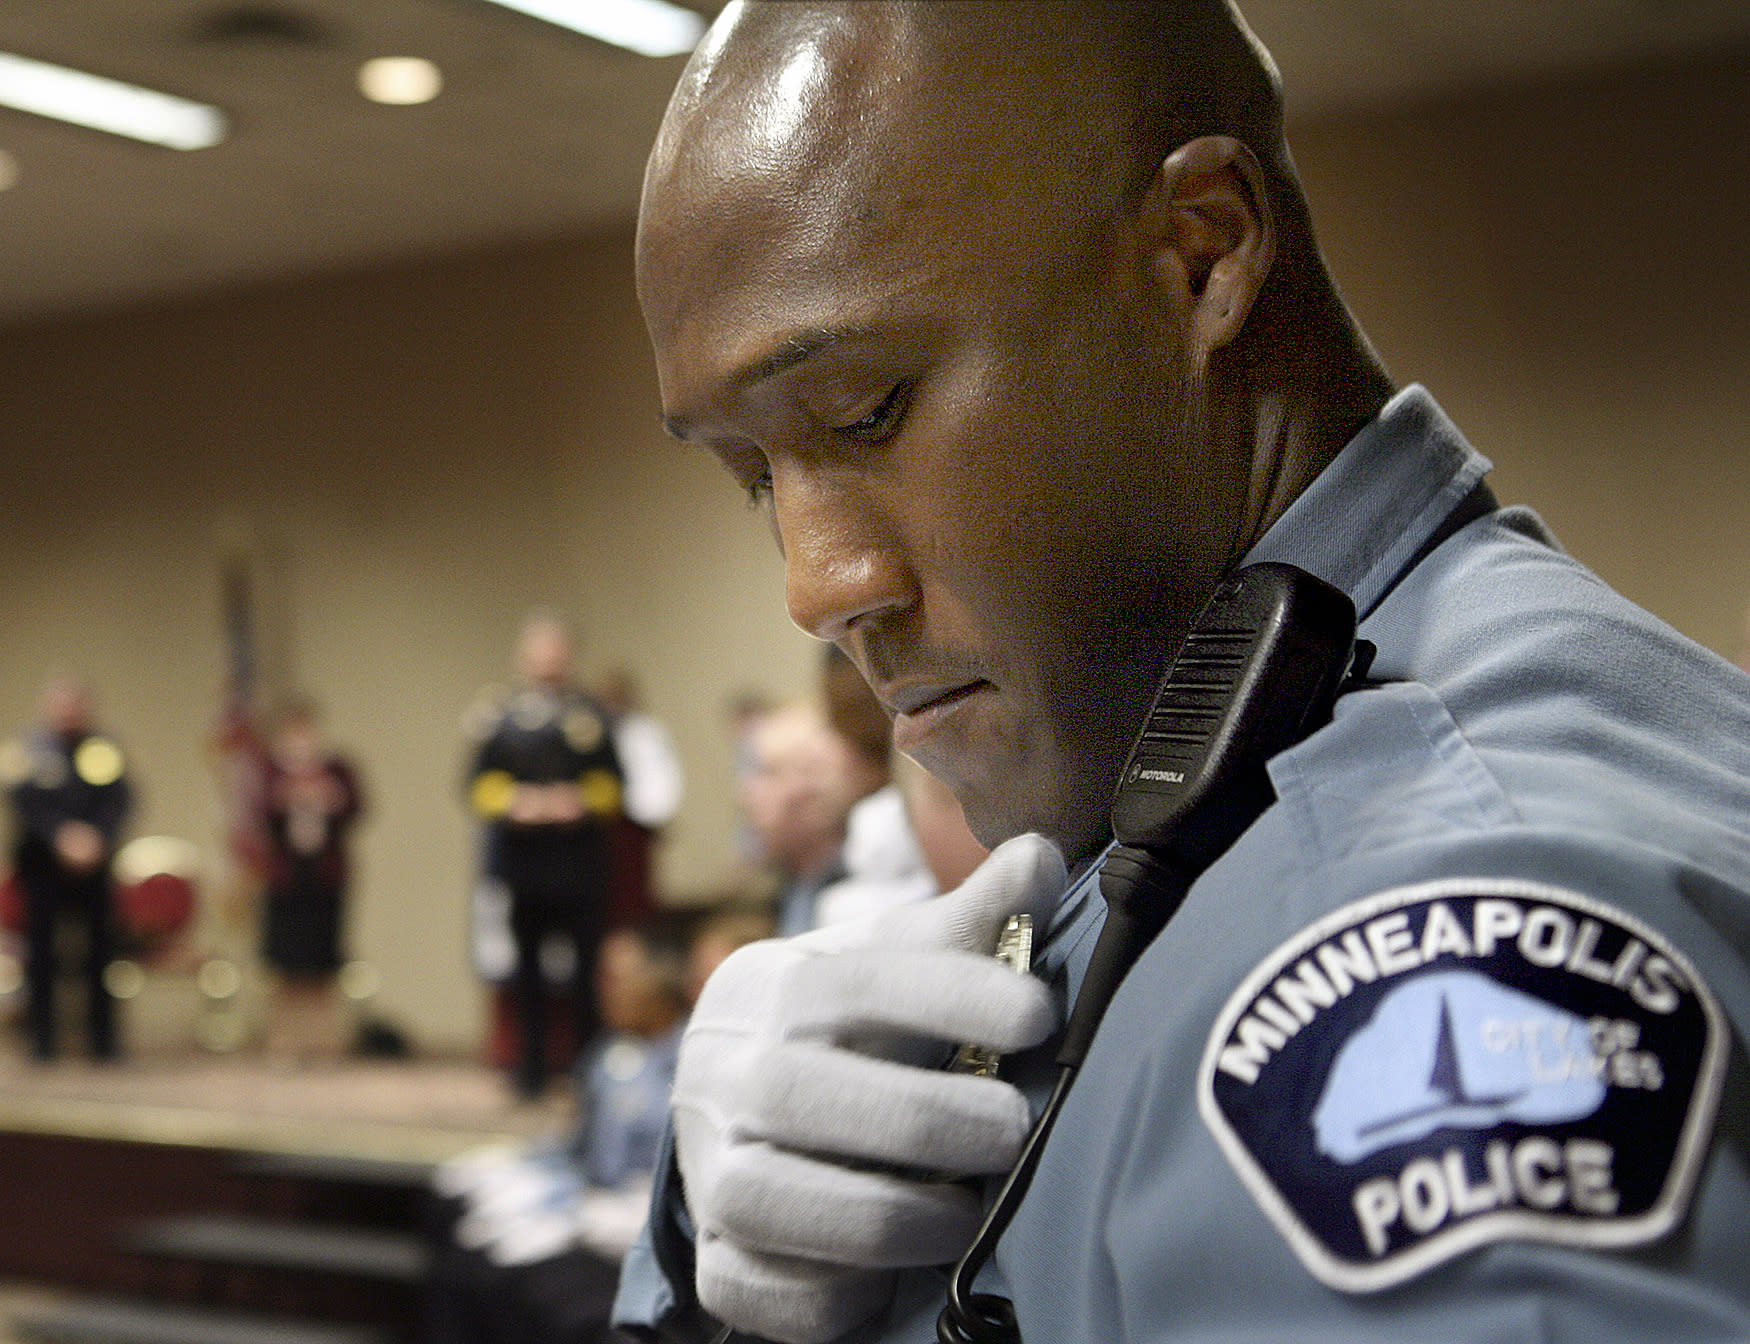 Minneapolis officer accused of assault, falsifying reports